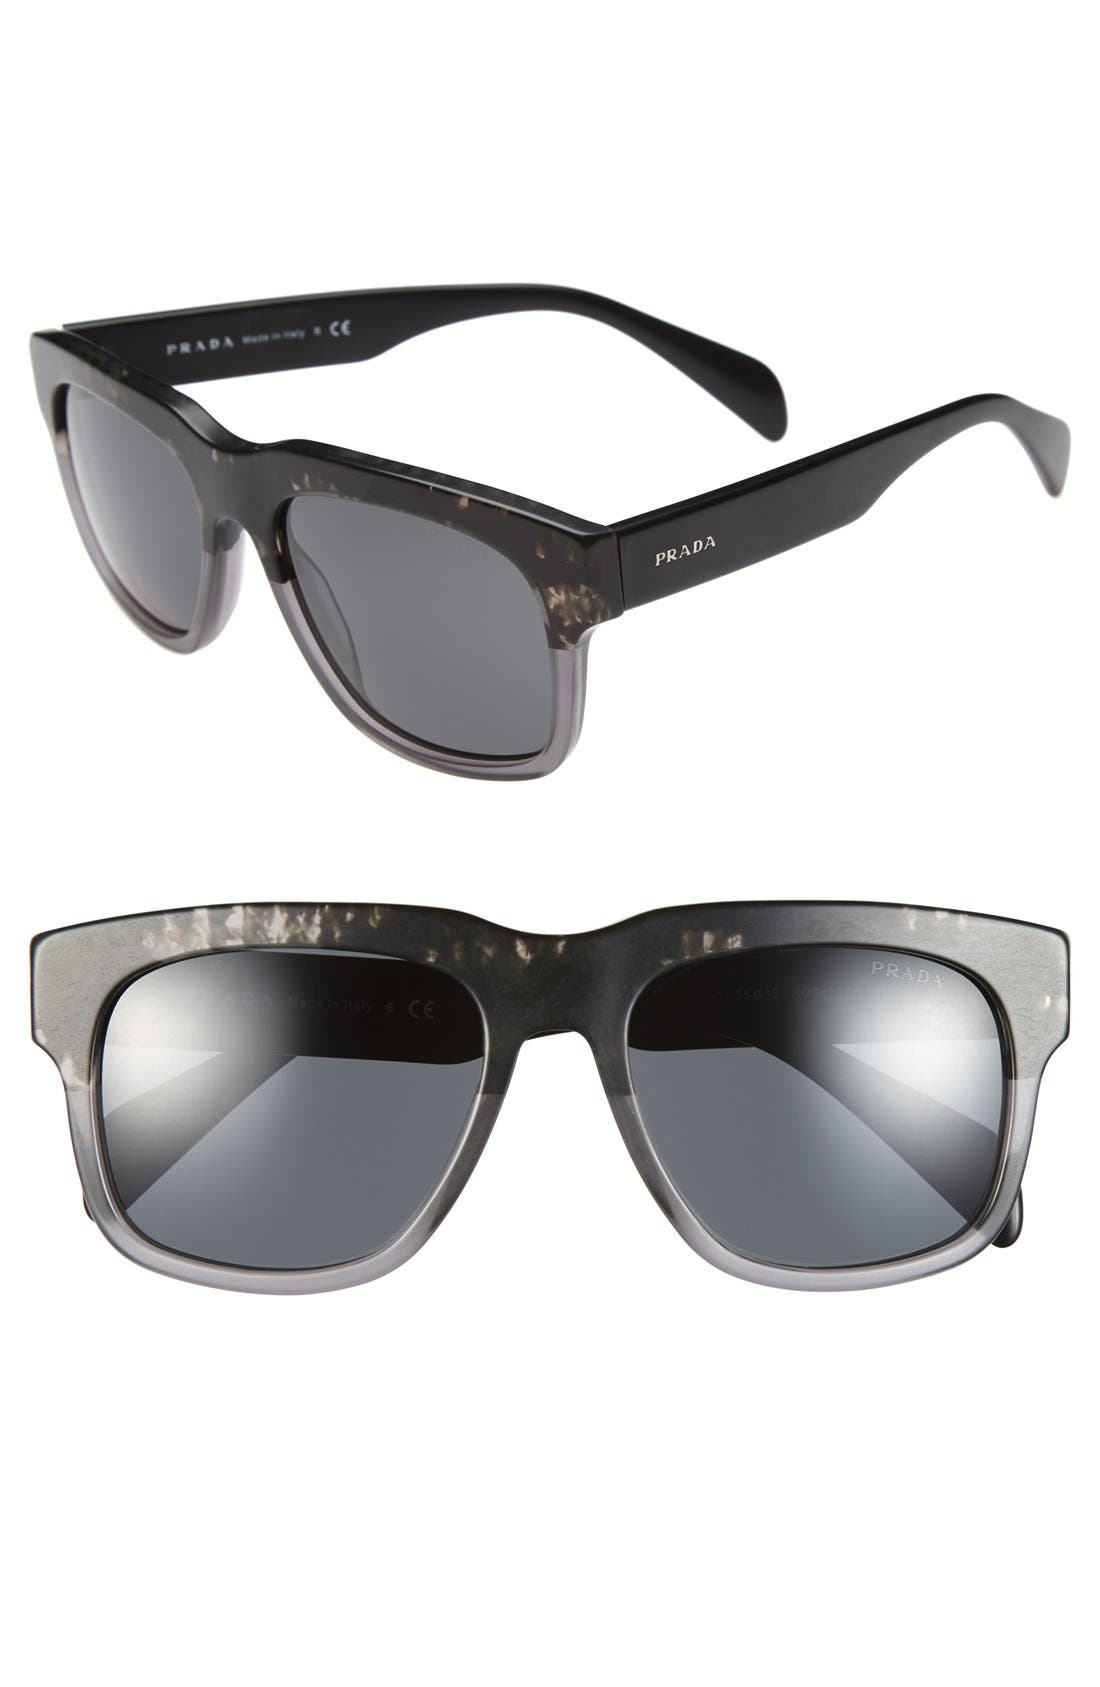 Main Image - Prada 55mm Sunglasses